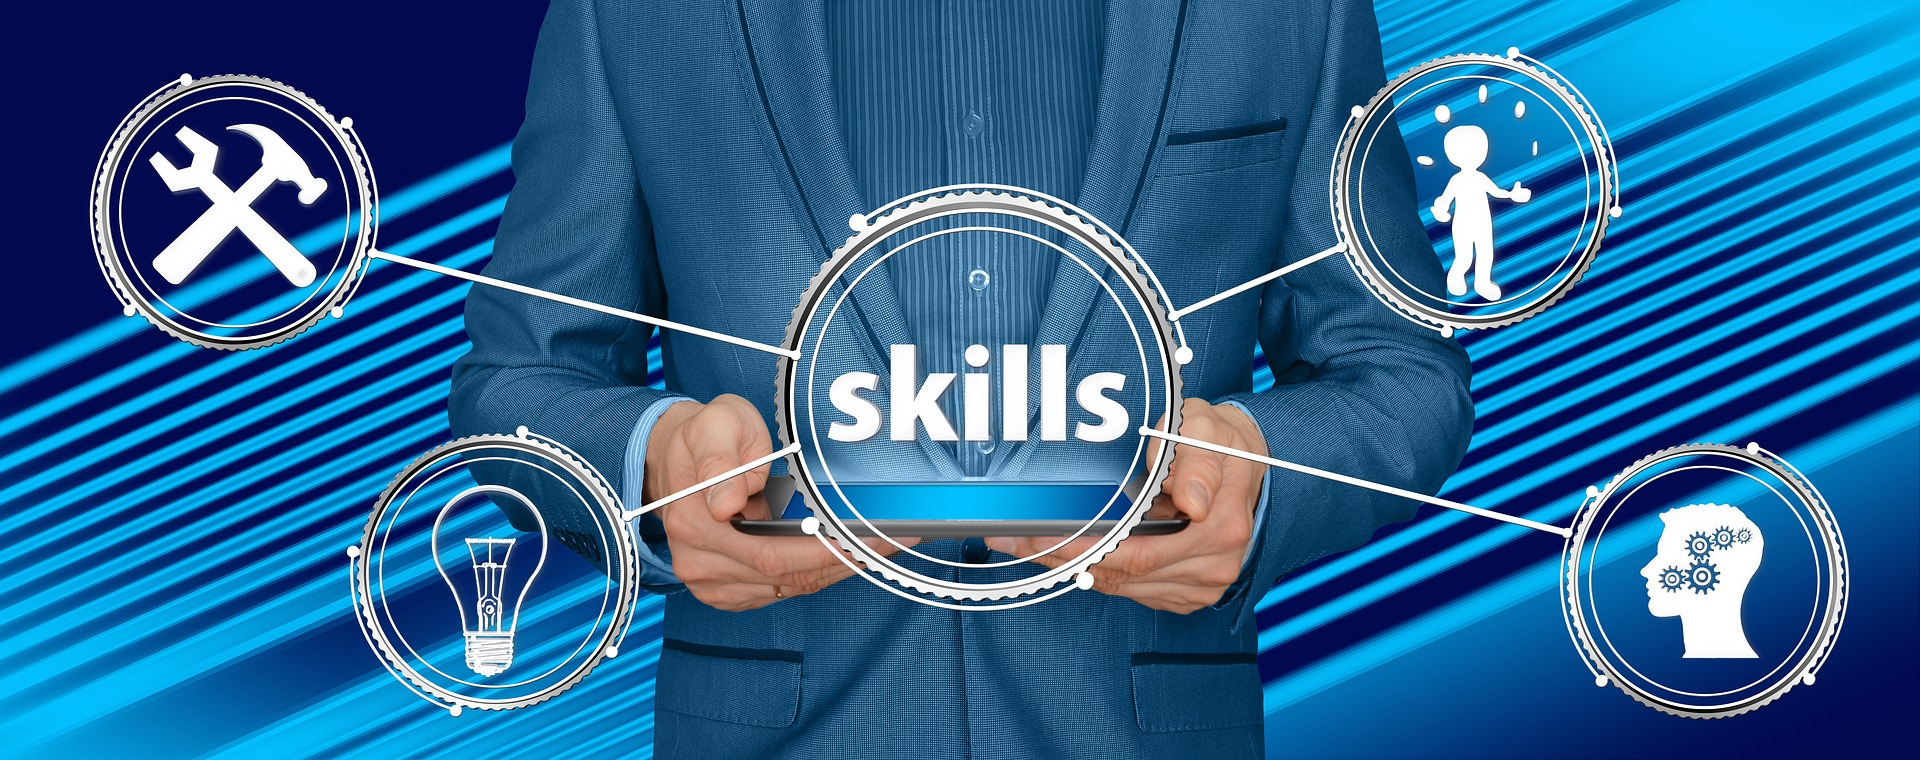 skills to include on resume part 2